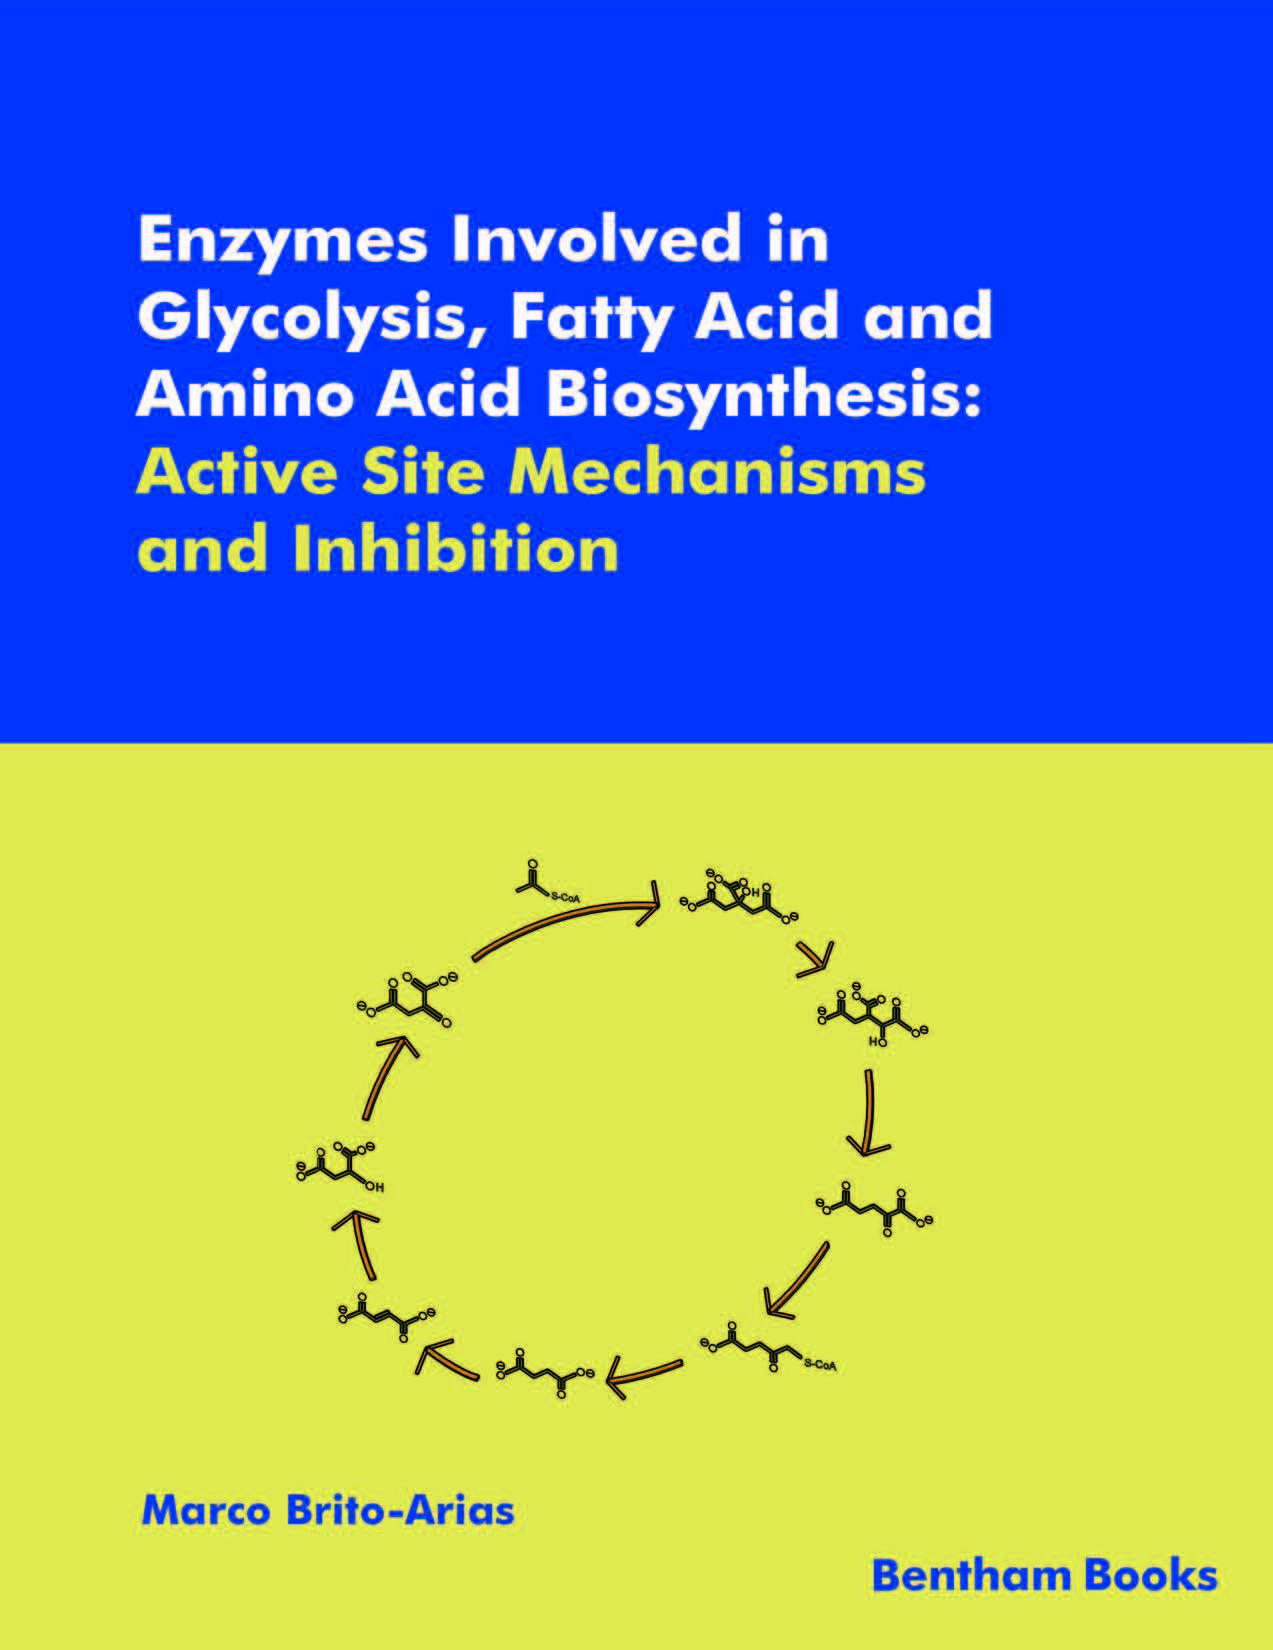 Enzymes Involved in Glycolysis, Fatty Acid and Amino Acid Biosynthesis: Active Site Mechanism and Inhibition